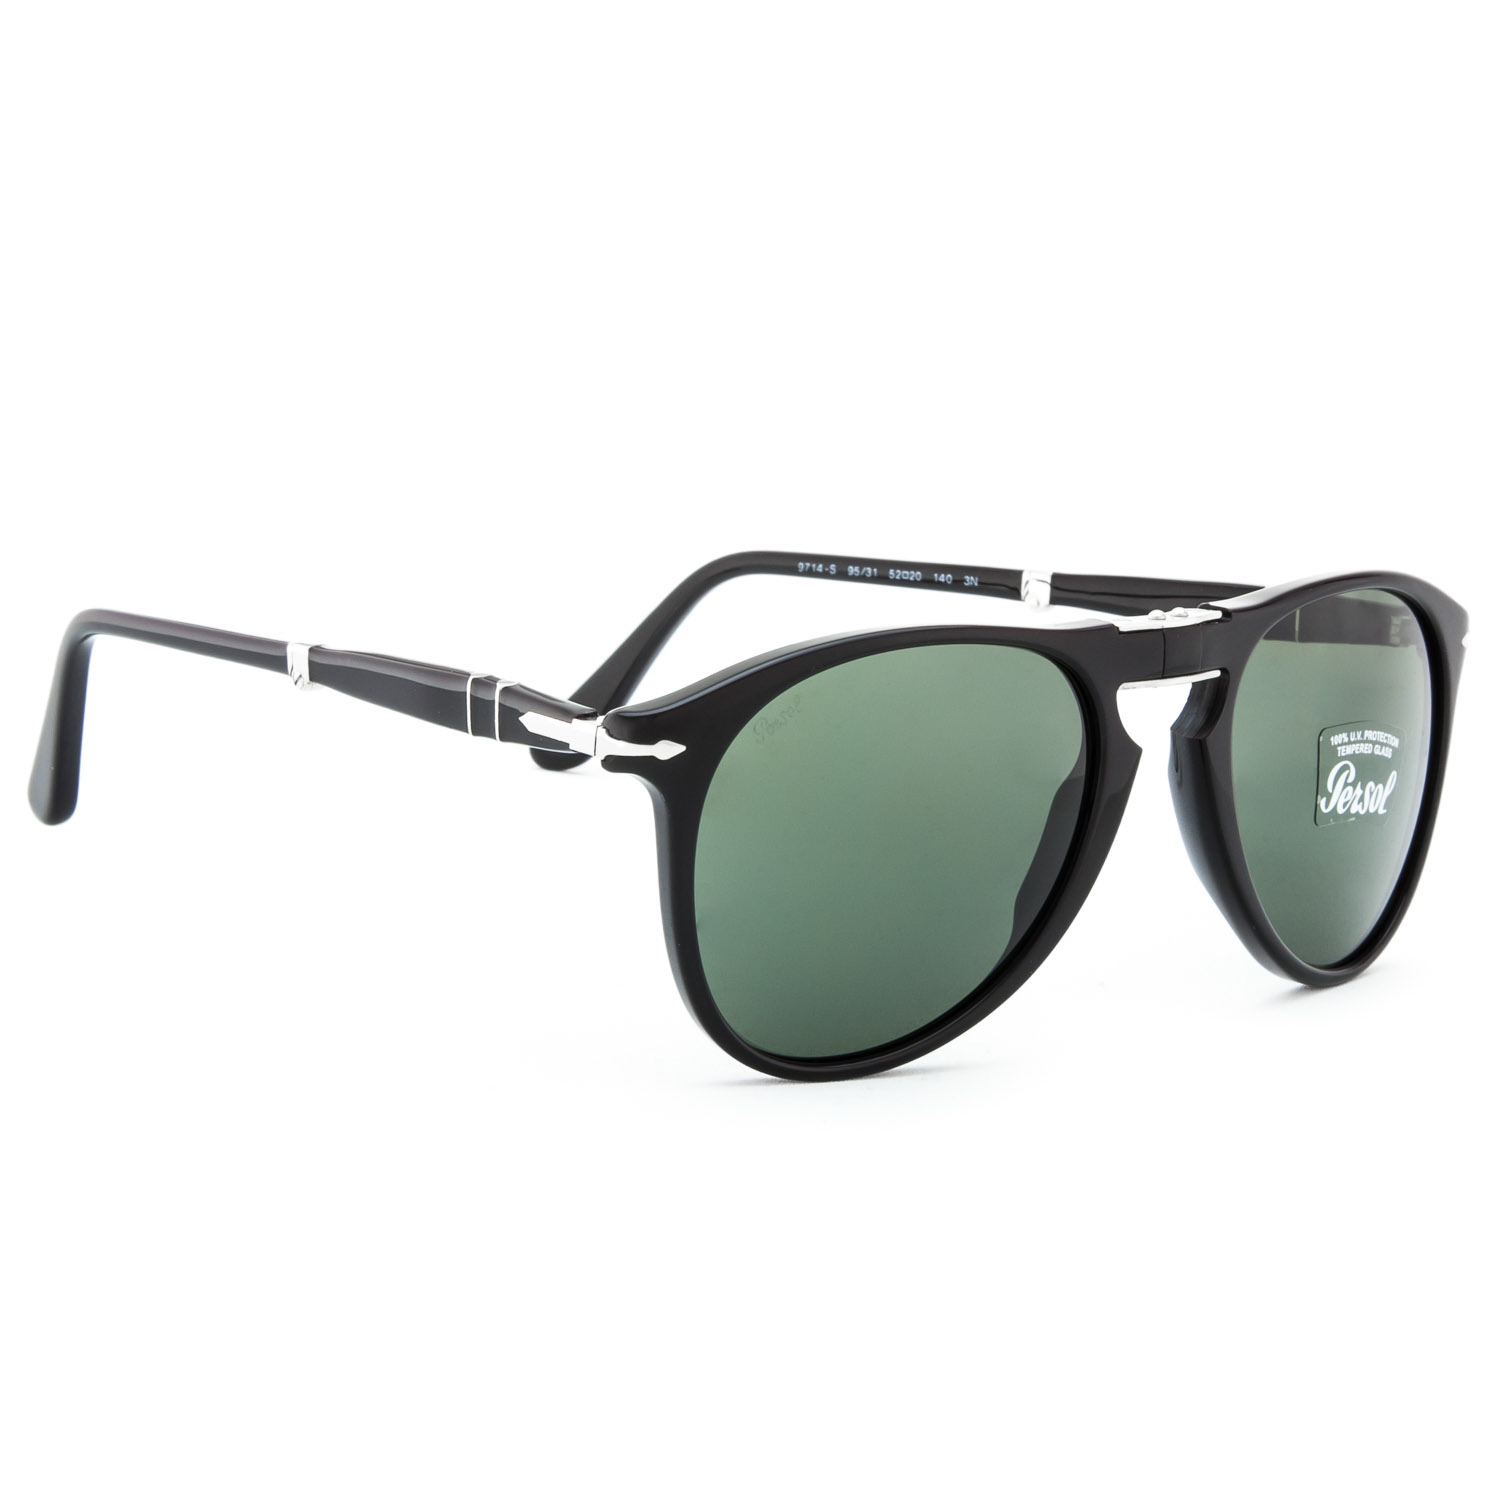 Persol Aviator Sunglasses Foldable furthermore Strongdiscount Ray Ban additionally Safety Glasses Side Shields together with Persol Aviator Sunglasses Foldable together with Ray Ban Aviator Vista Prezzi. on ray ban prescription gl